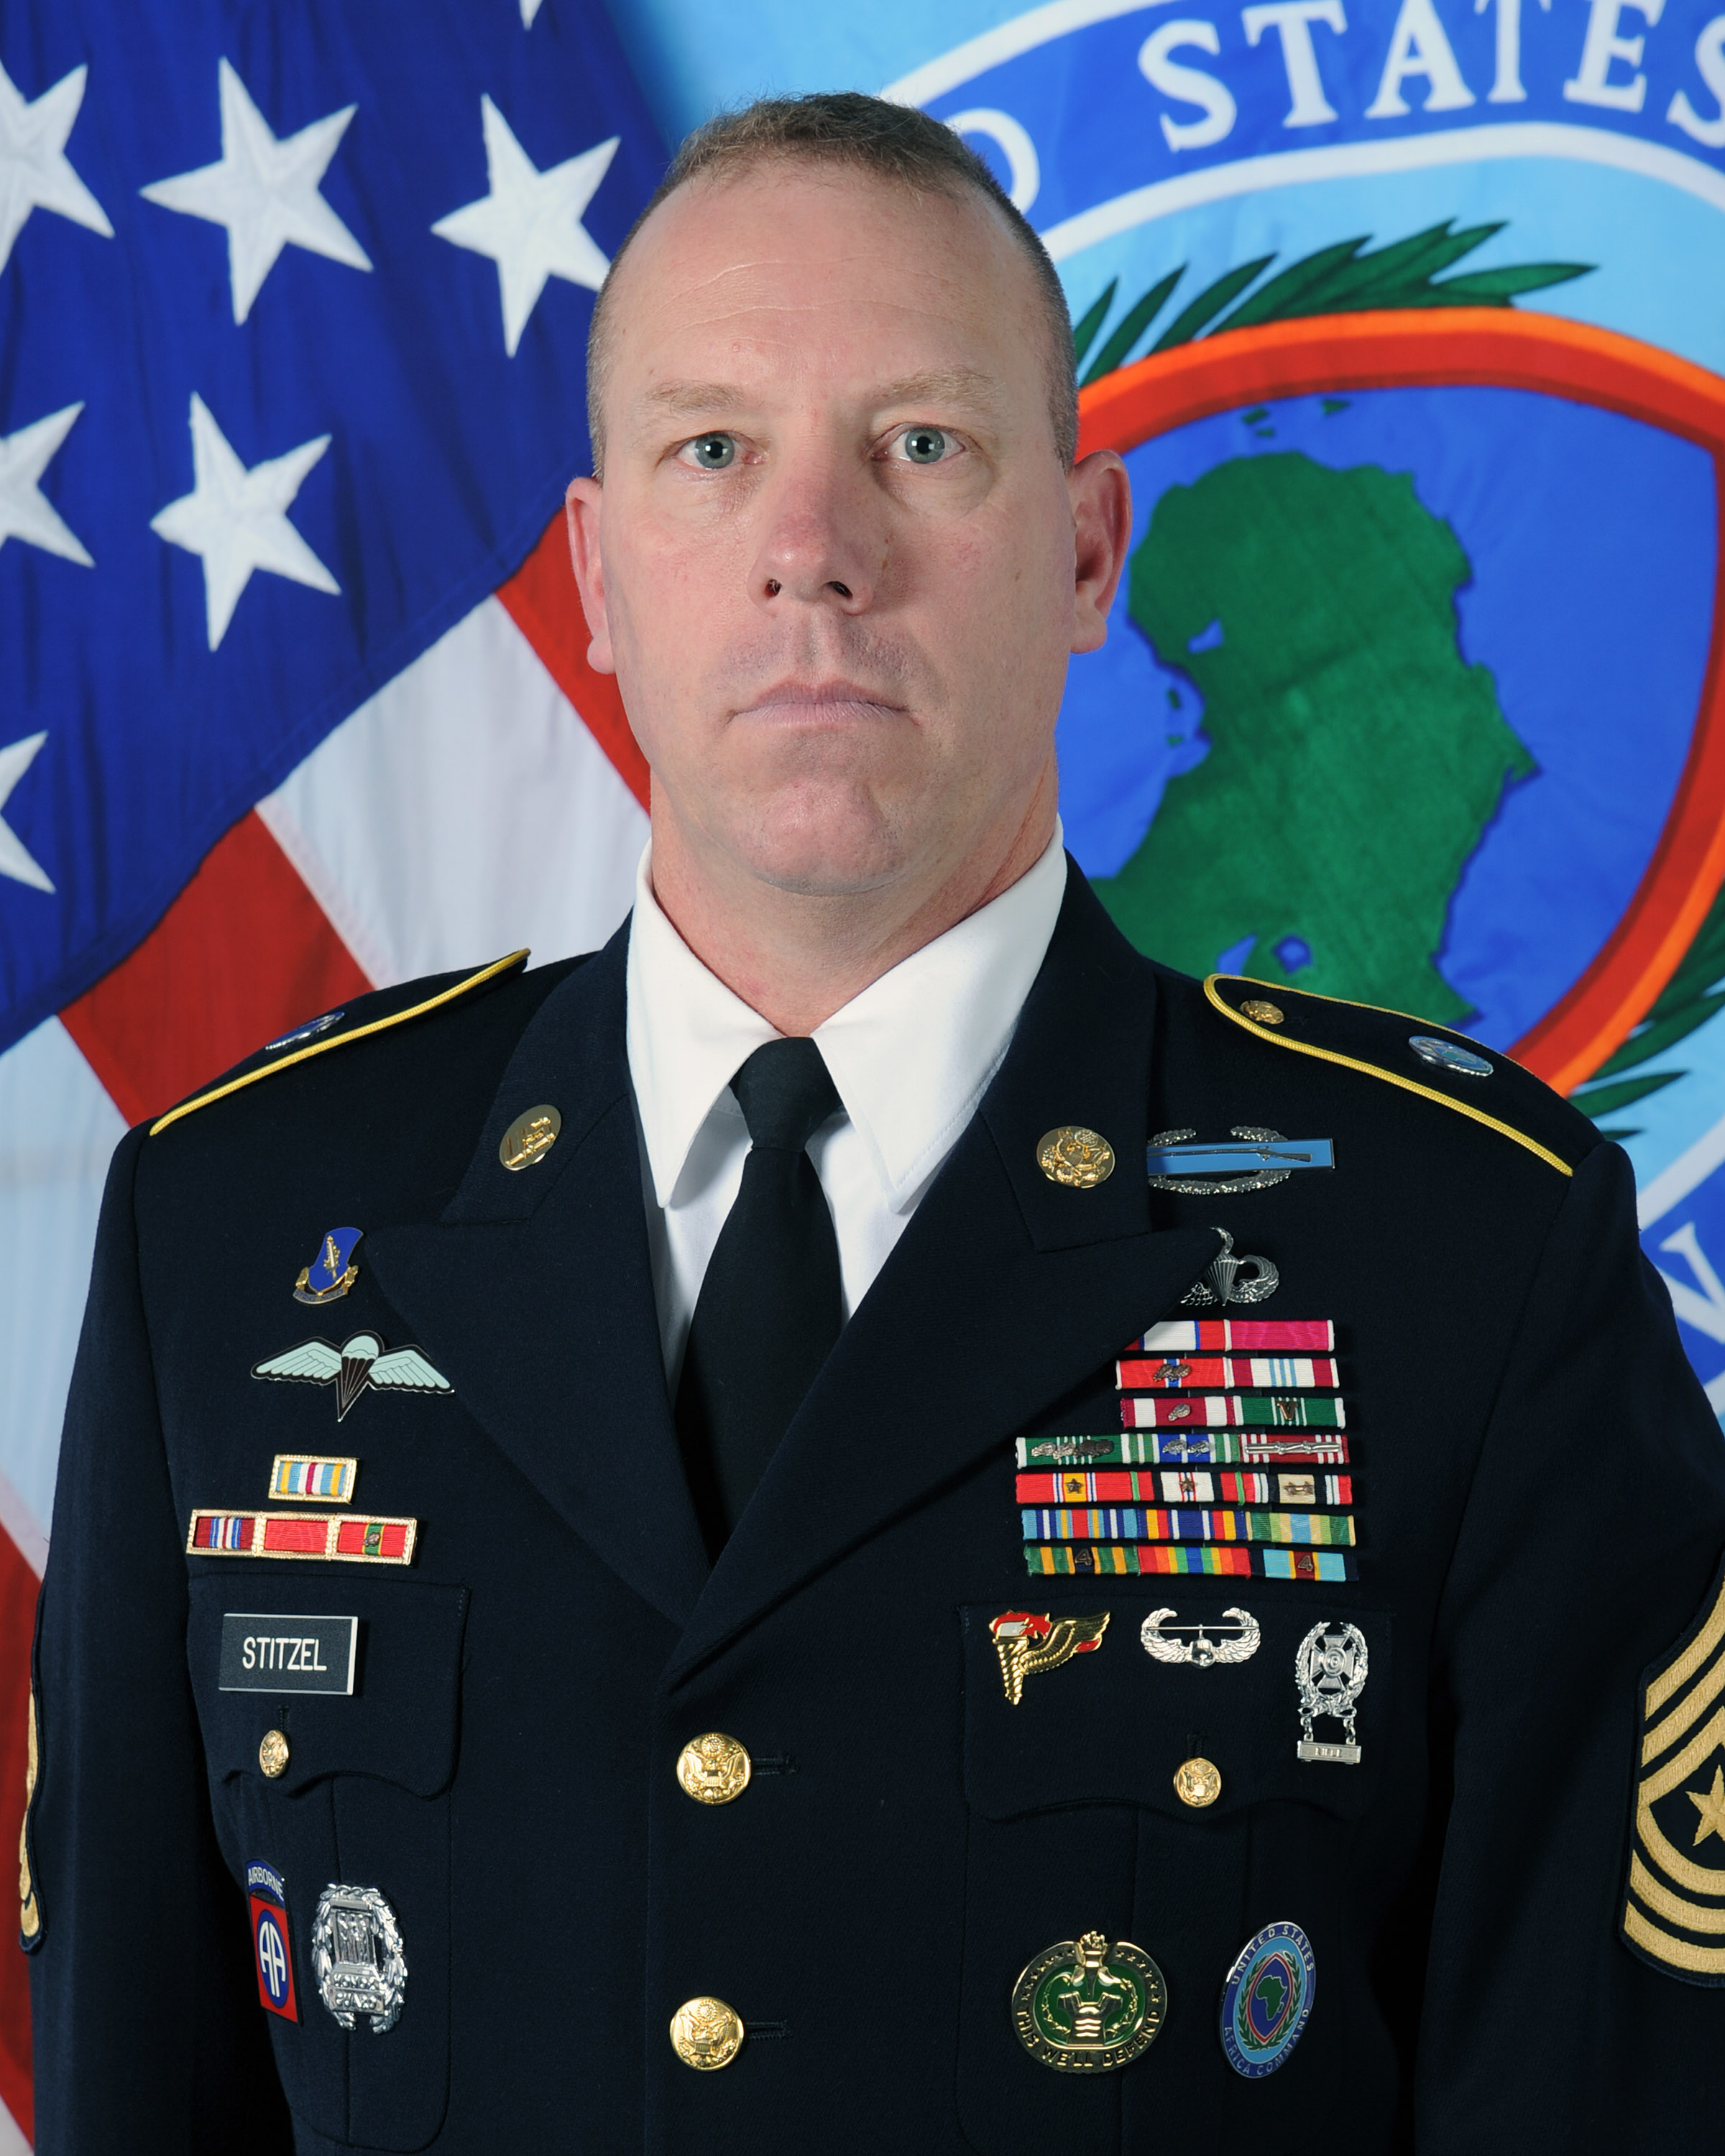 Sergeant Major Jeffery T. Stitzel is the Acting Command Senior Enlisted Leader.